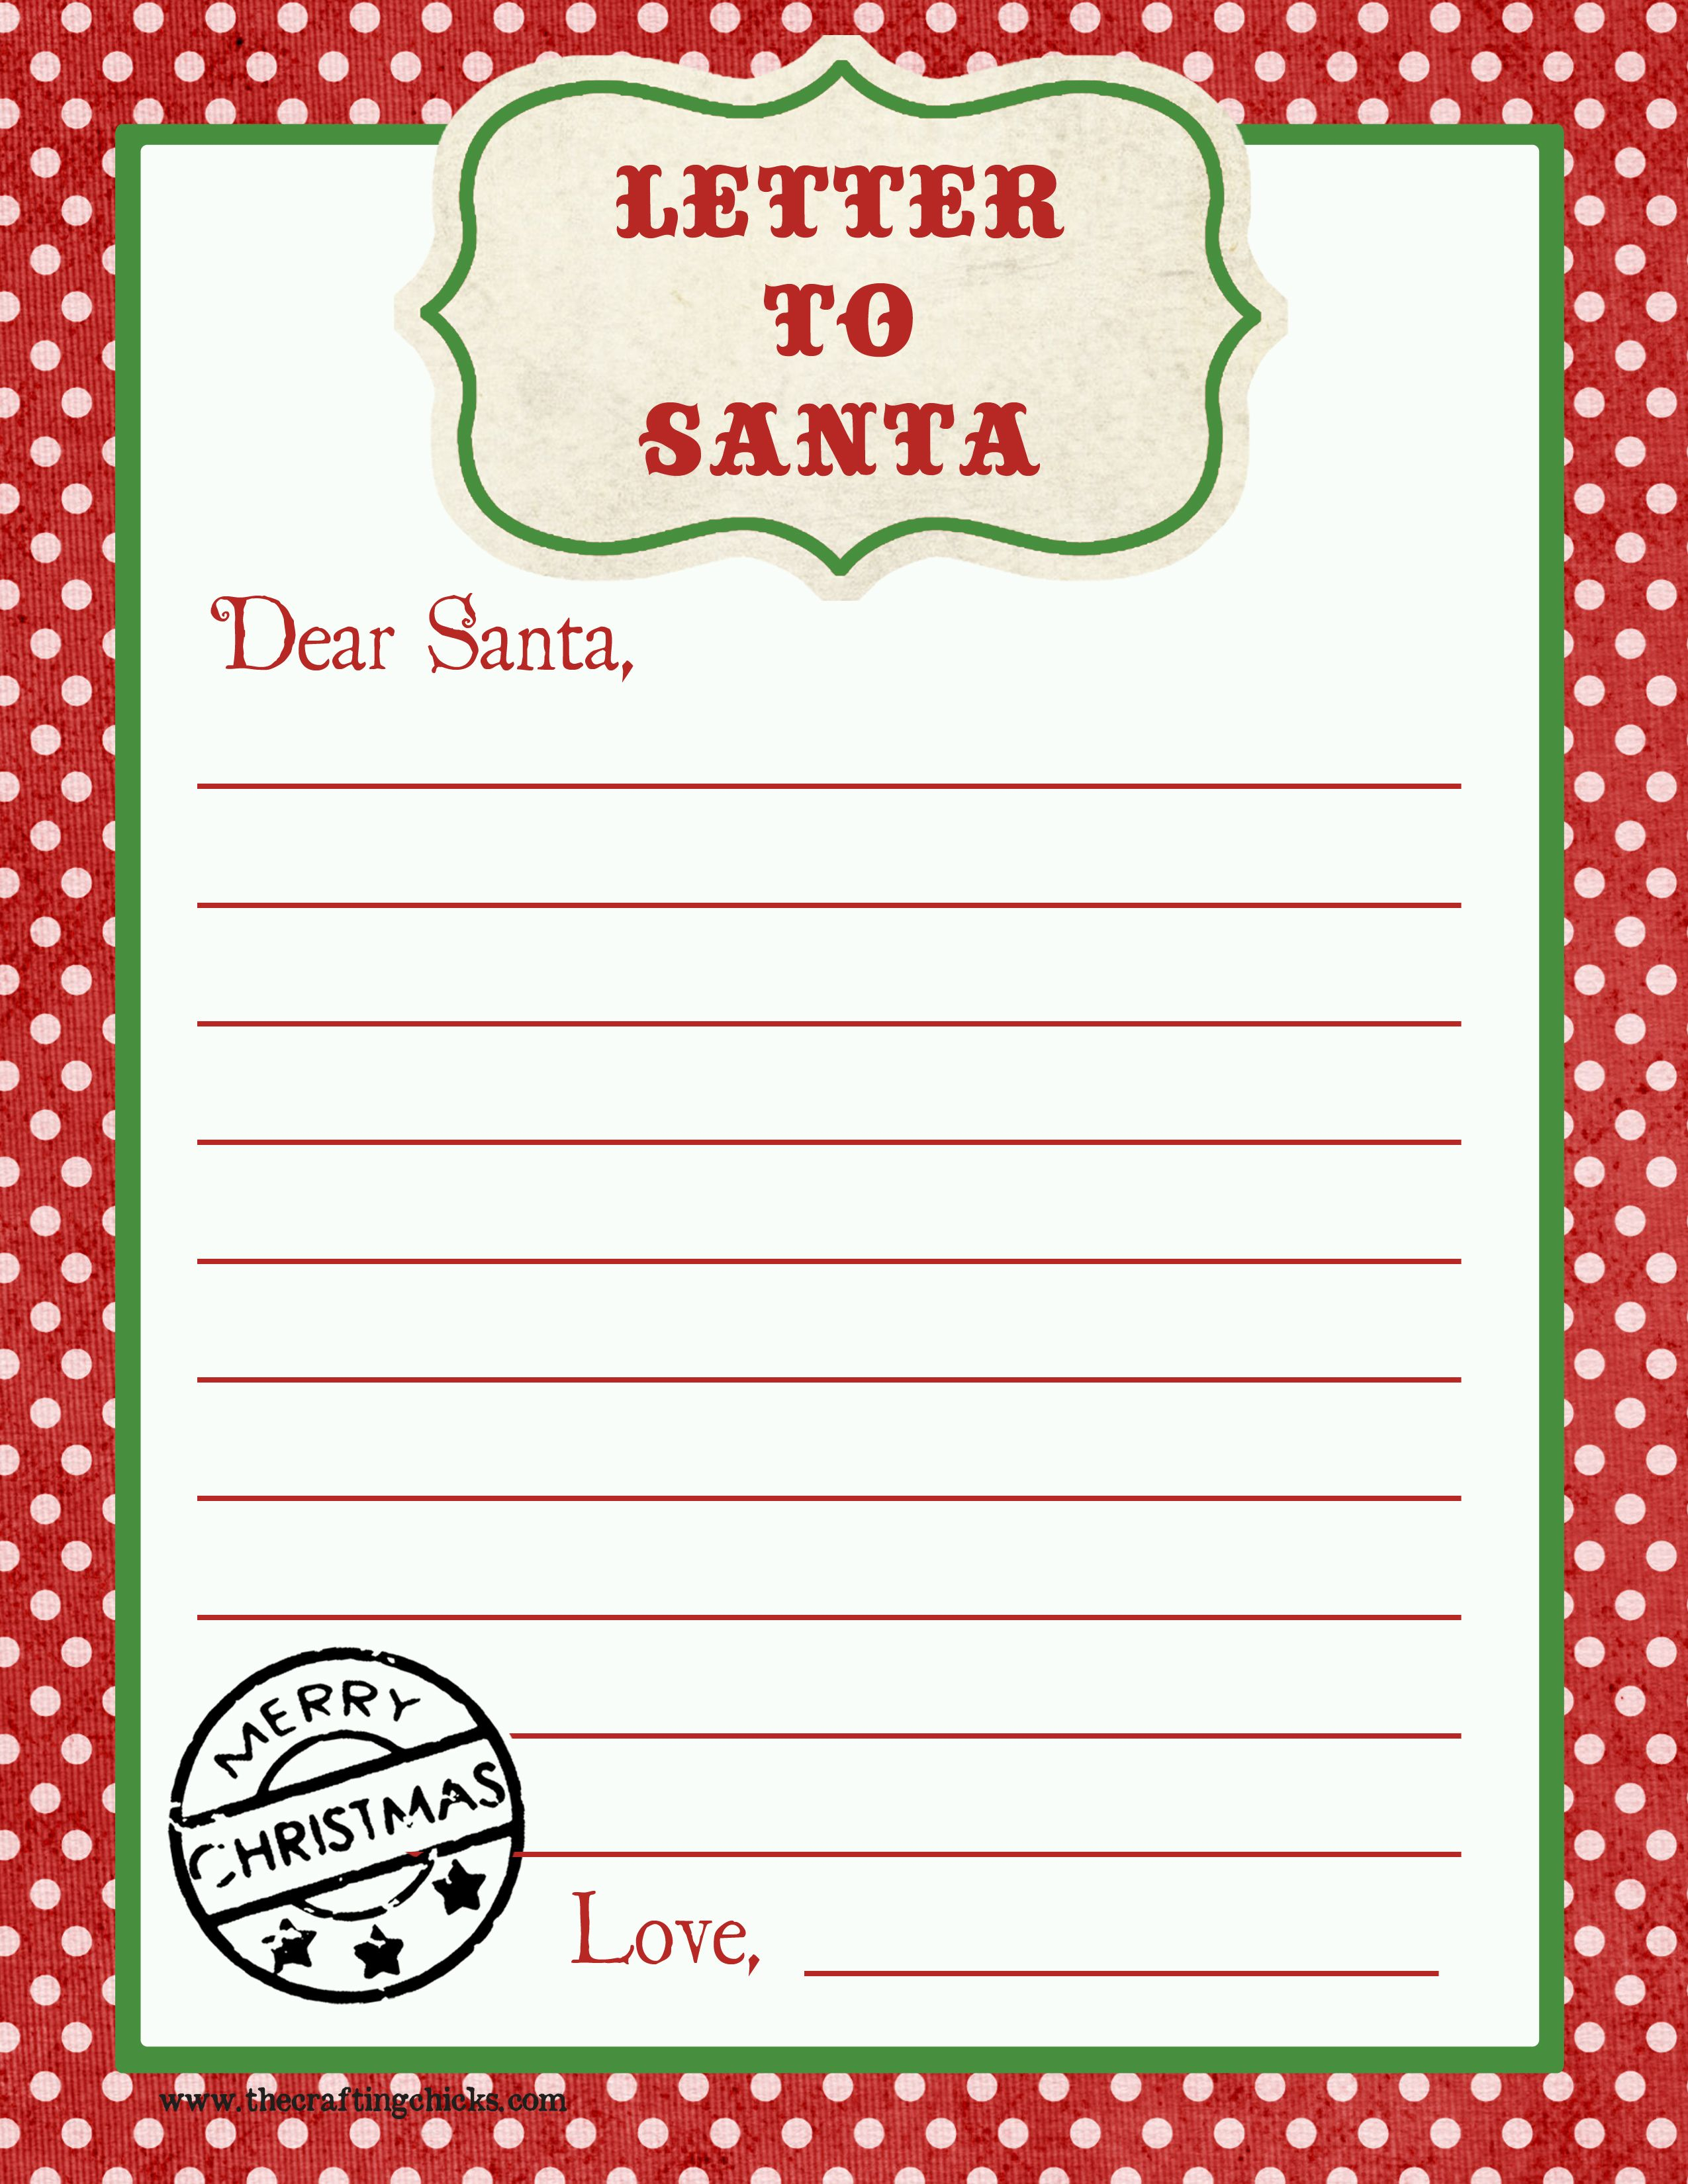 Free Printable Letter From Santa Template - Letter to Santa Free Printable Download